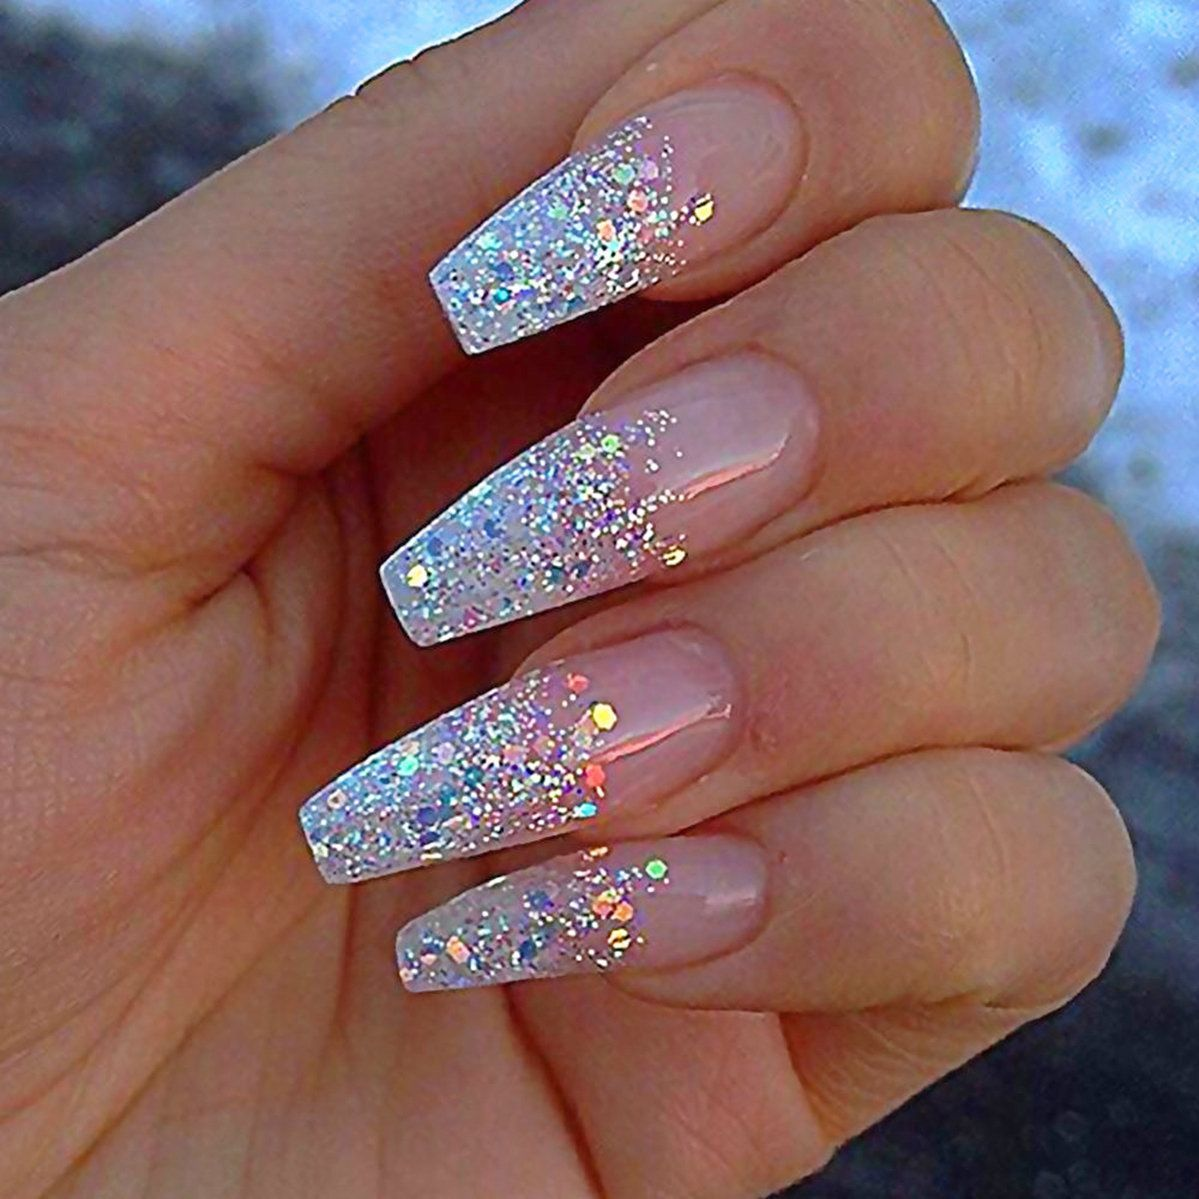 SWAROVSKI CRYSTALS For NAILS Crystal Pixie Dust Micro Zircon Nail Rhinestones For Nail Art 1000 Crystals In Jar Holiday Small gift For Her